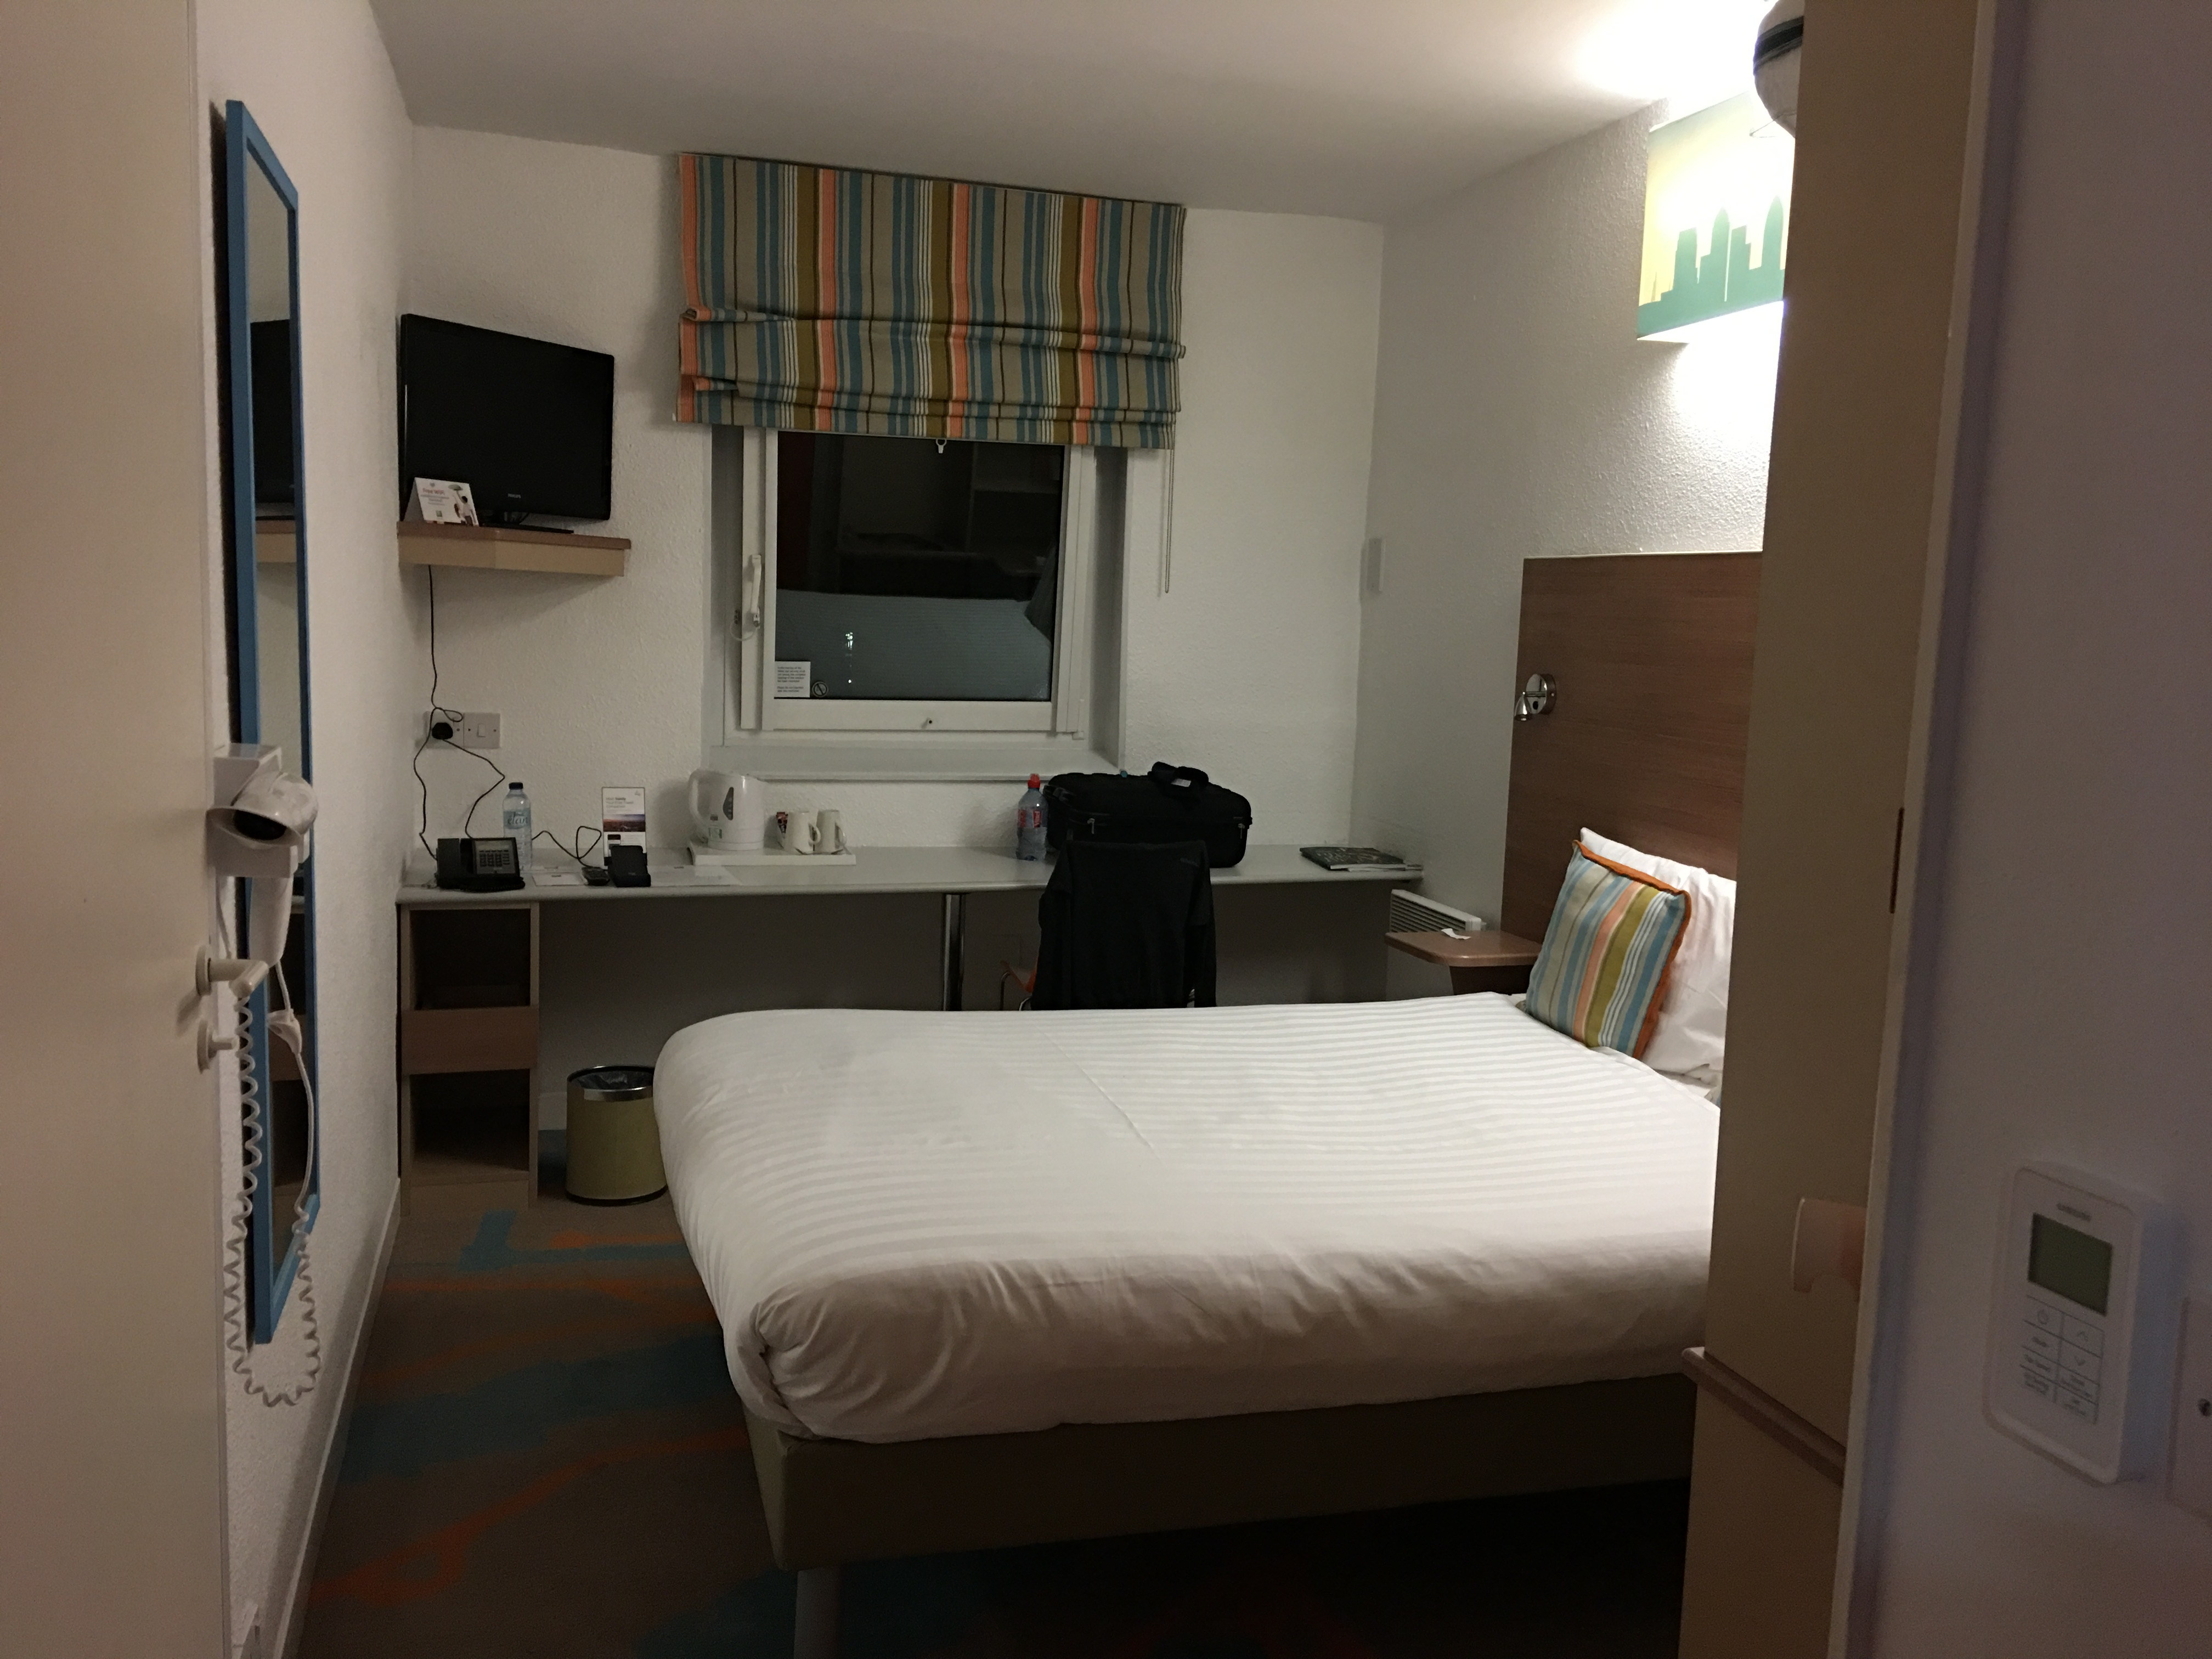 ibis Styles London Excel Zimmer 205 Eingang